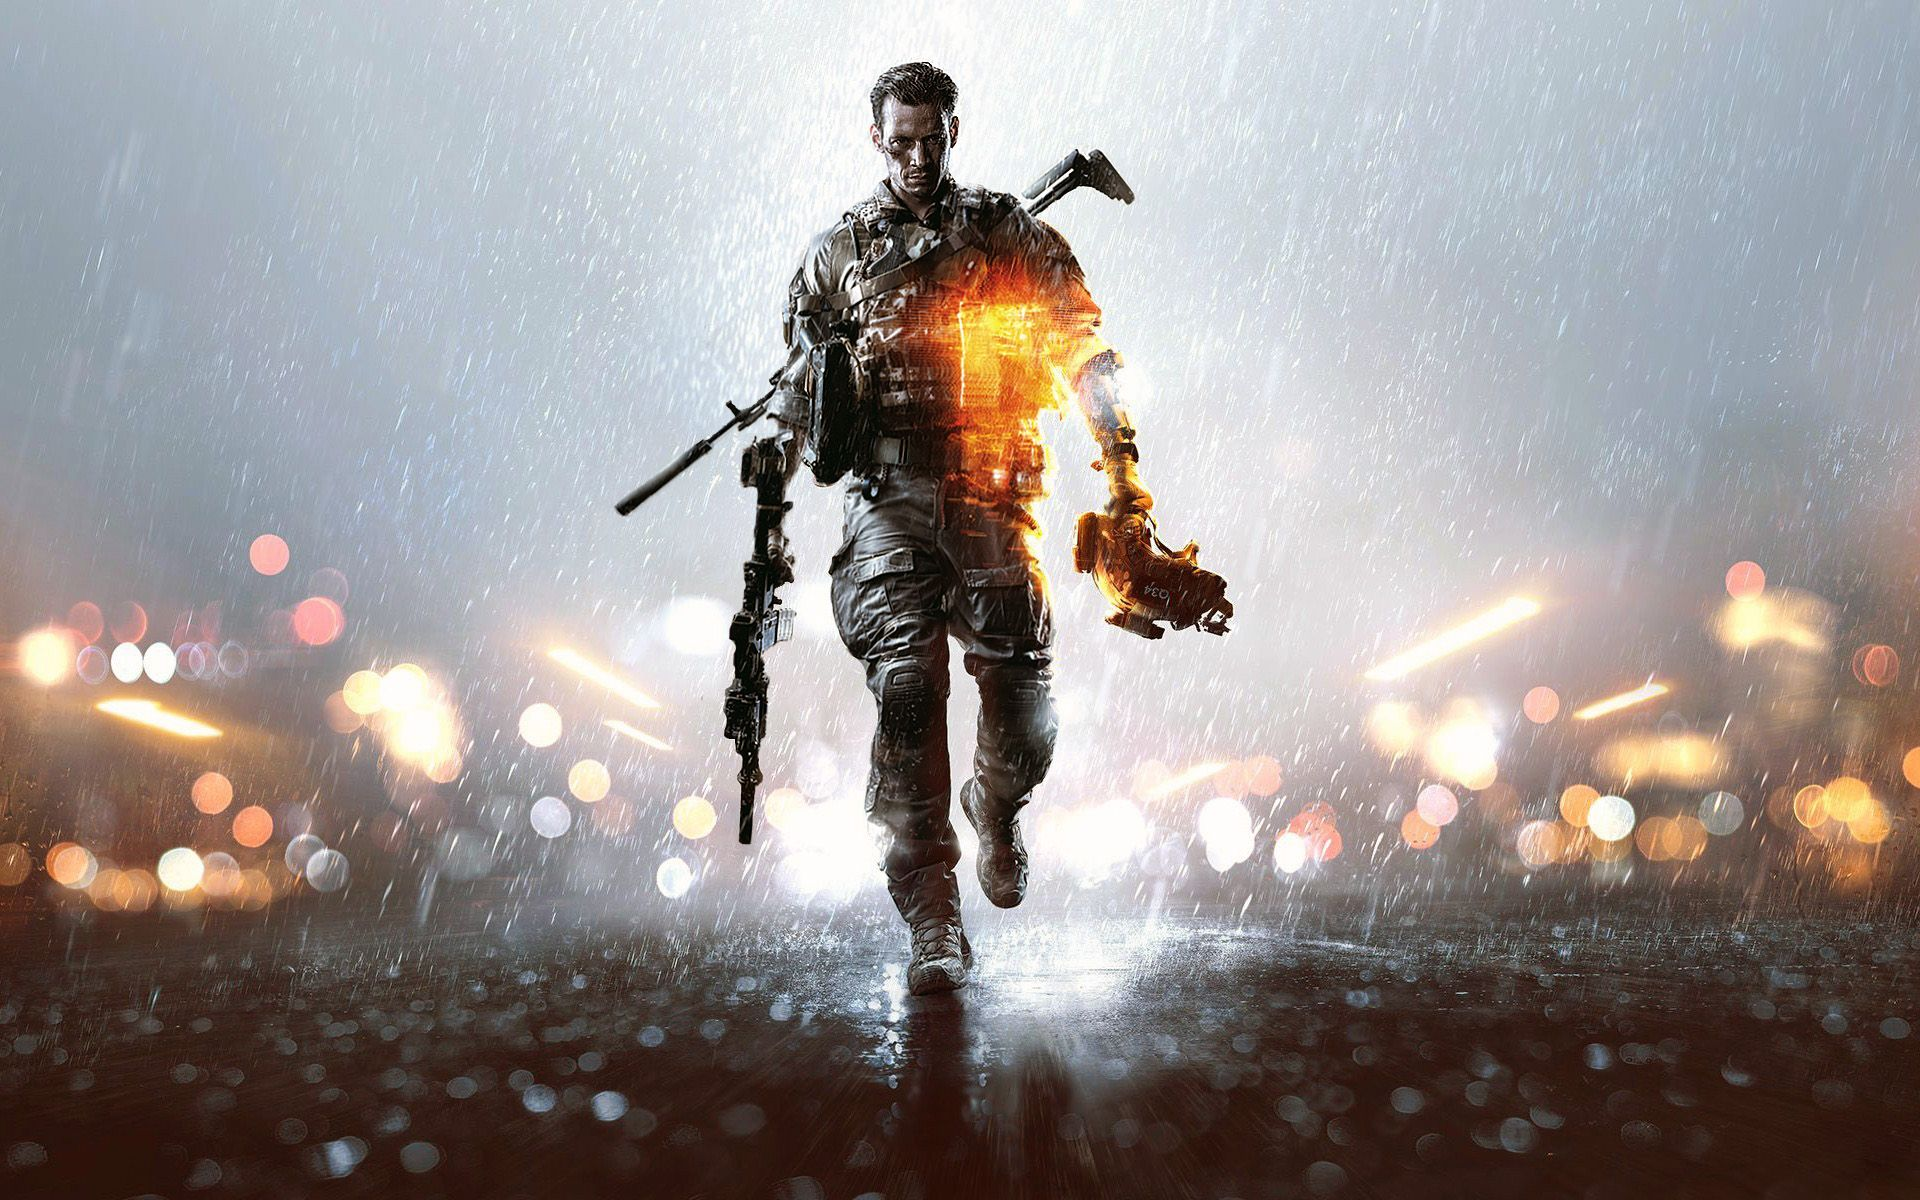 Best Shooting Pc Game Battlefield 4 Ea And Dice S Next Generation First Person Shooter Easports Battlefield 4 Battlefield 4 Battlefield Military Wallpaper